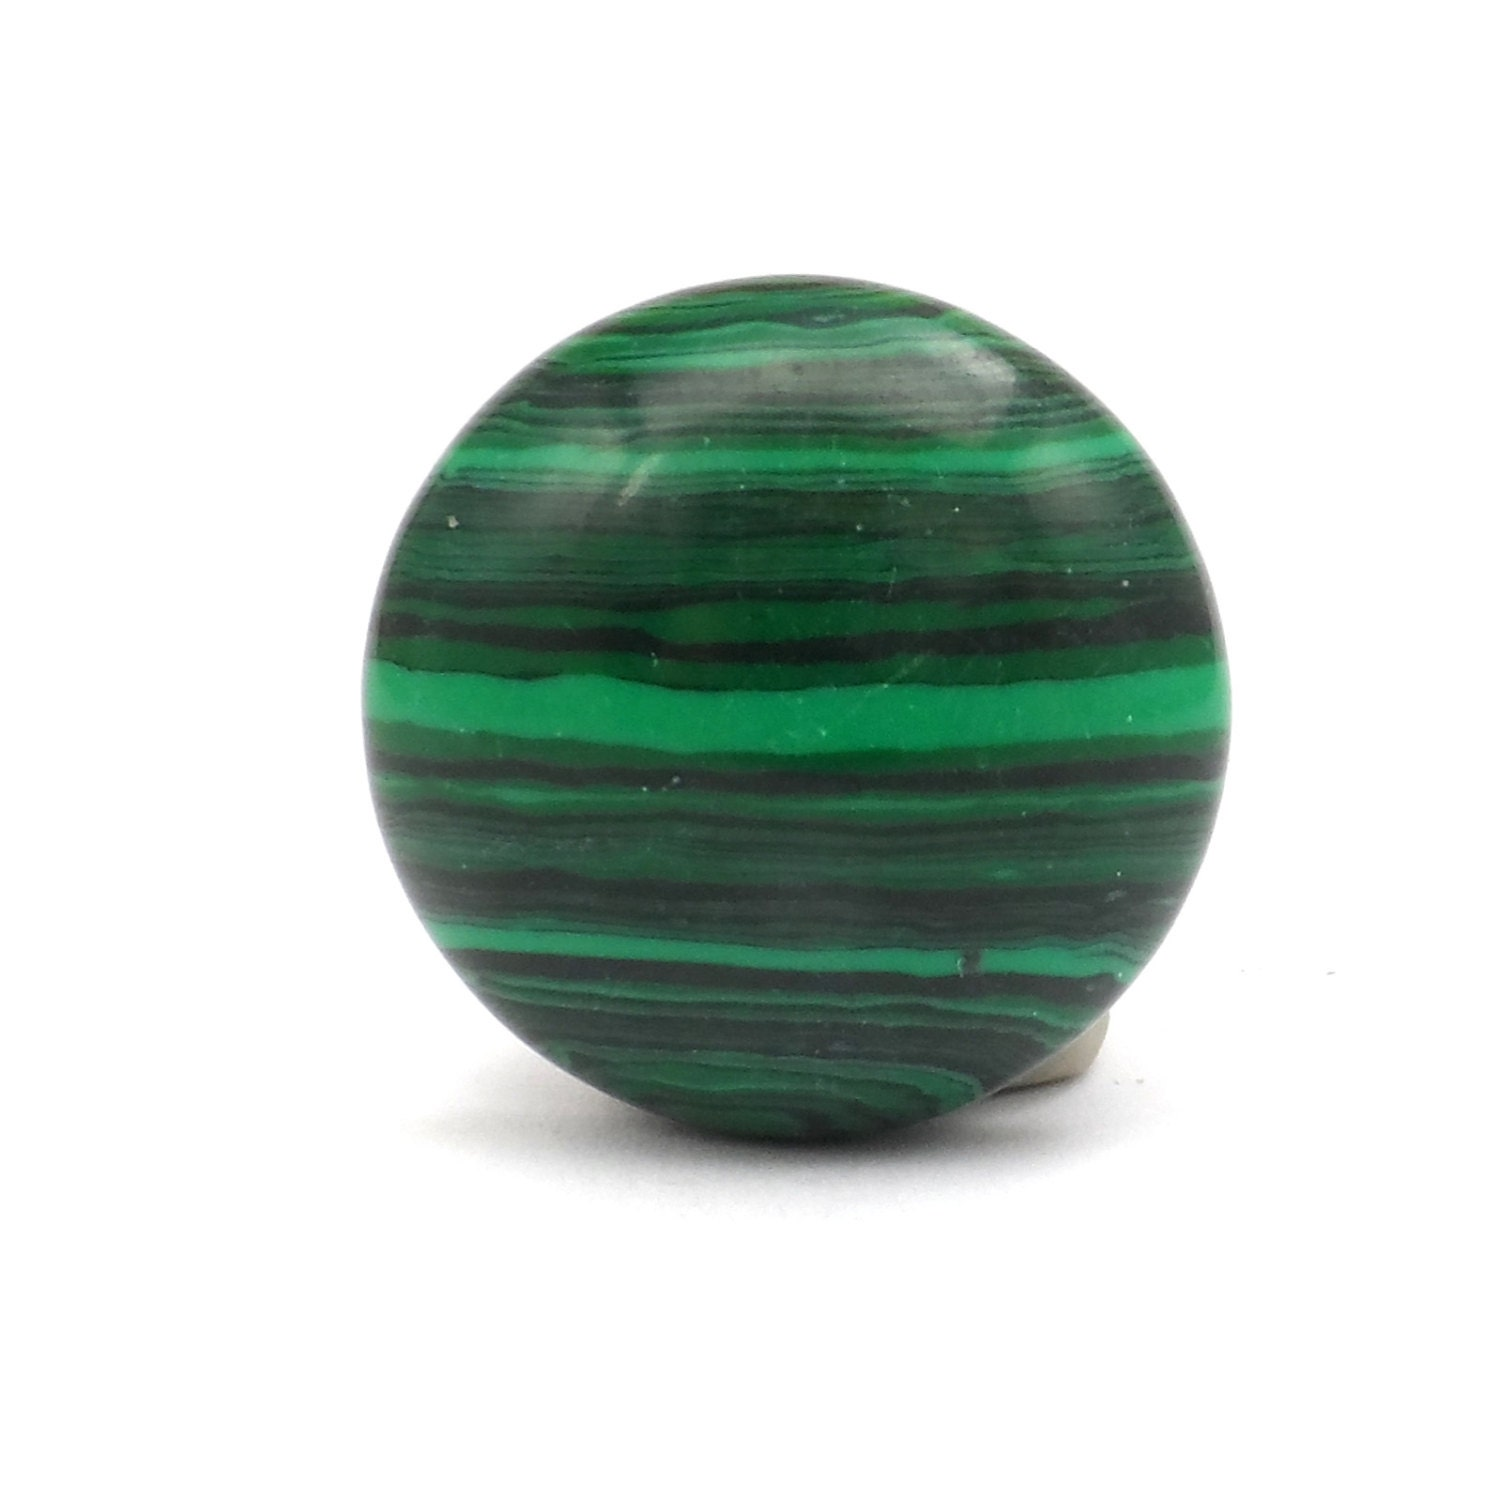 Round Green Marble : Malachite cabochon round green stone by